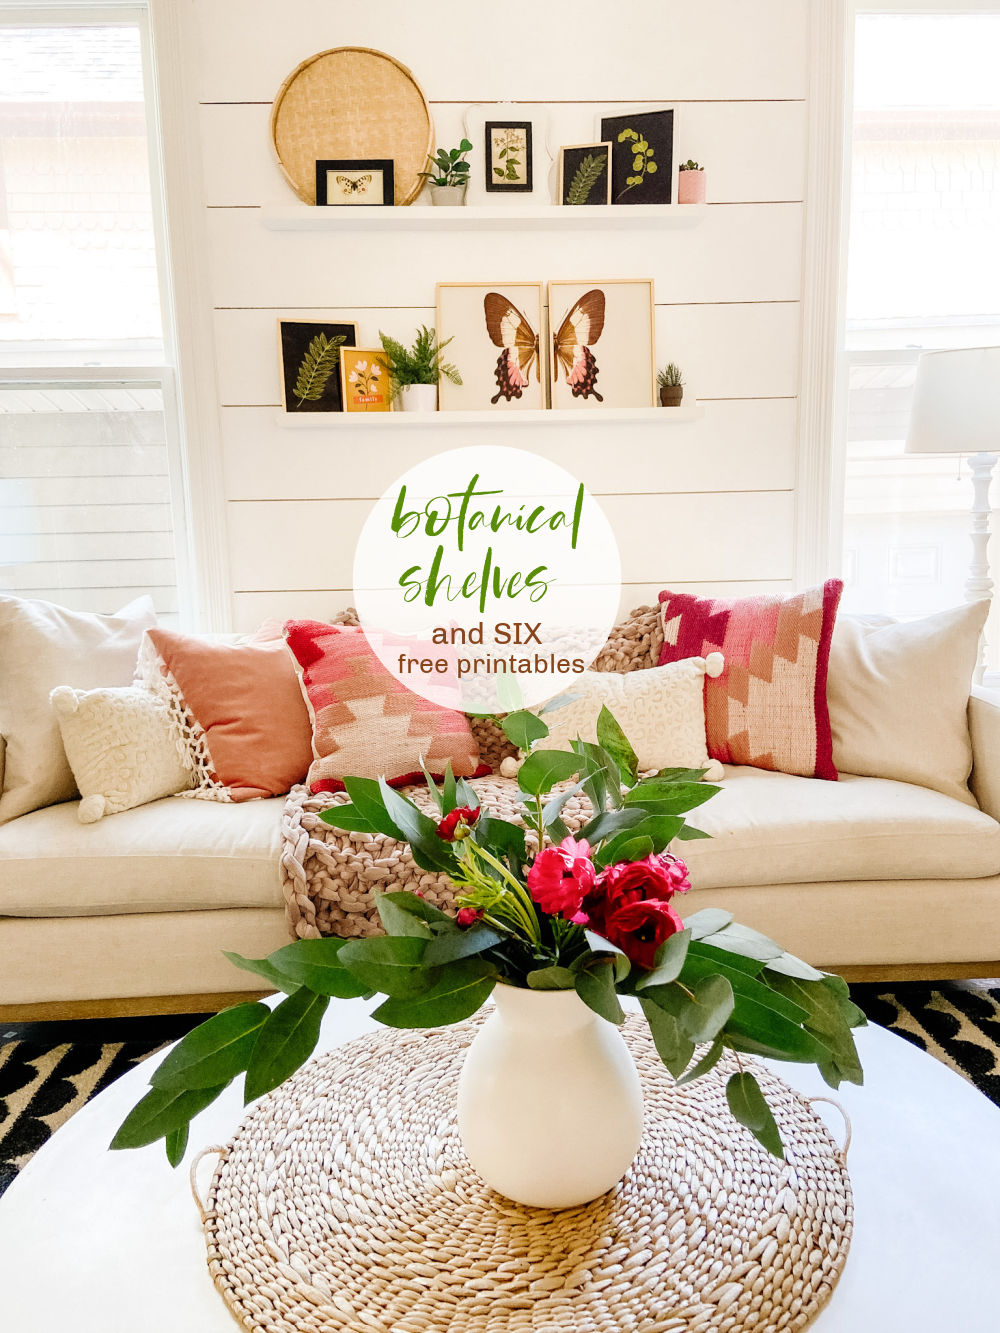 Botanical Art Focal Shelves with 6 Free Printables. Celebrate Summer by creating a botanical focal wall with these 6 free printables!